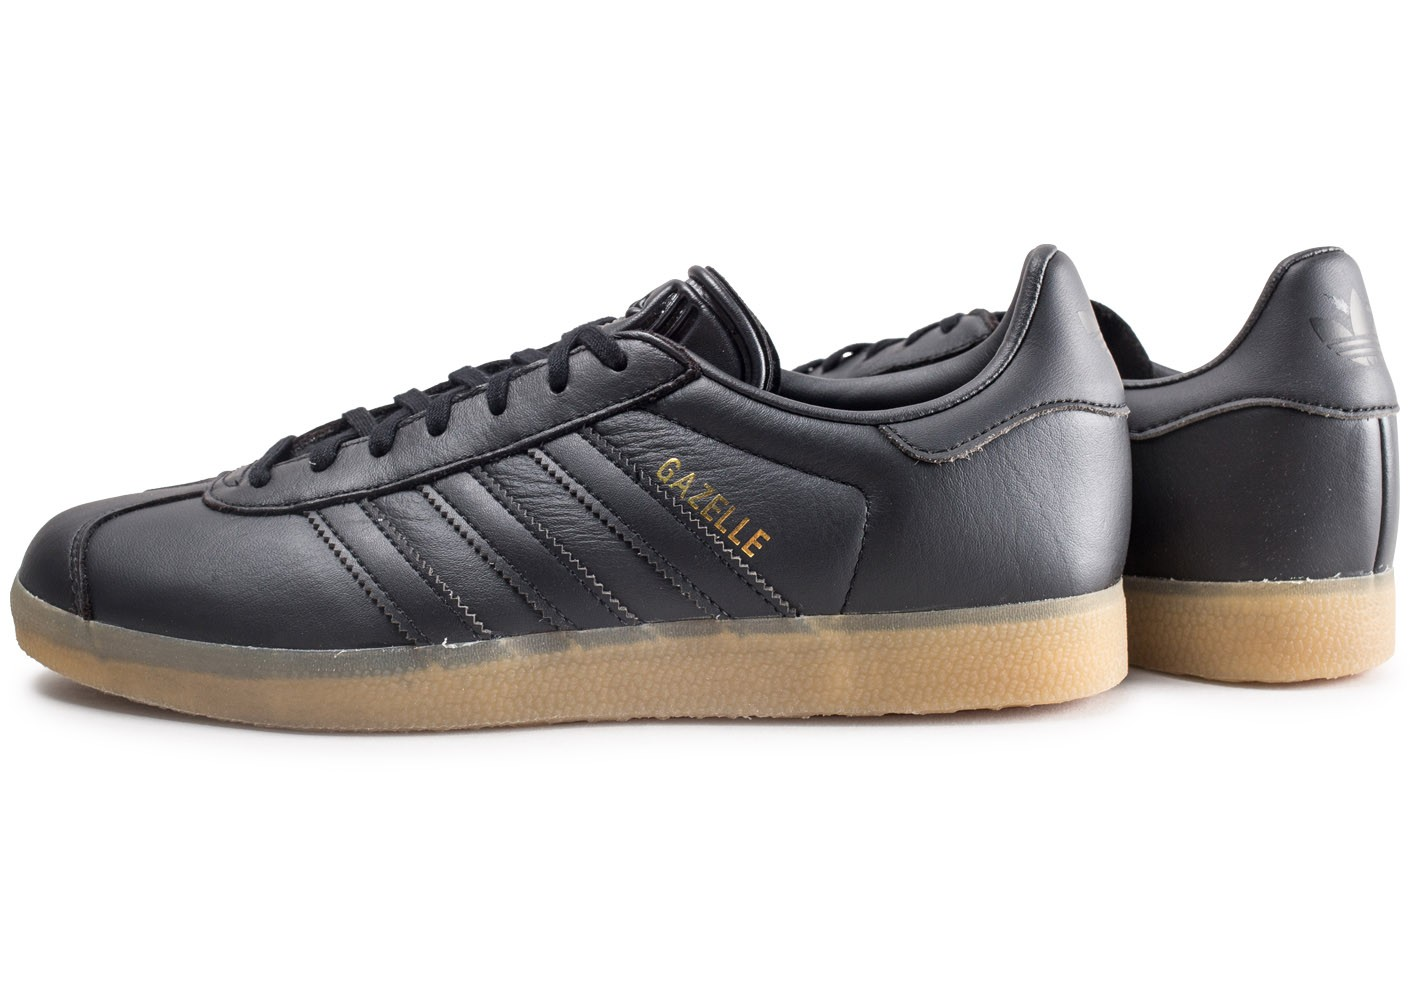 outlet for sale performance sportswear official shop Chaussures Noire Homme Baskets Chausport Gazelle Adidas Gum ...